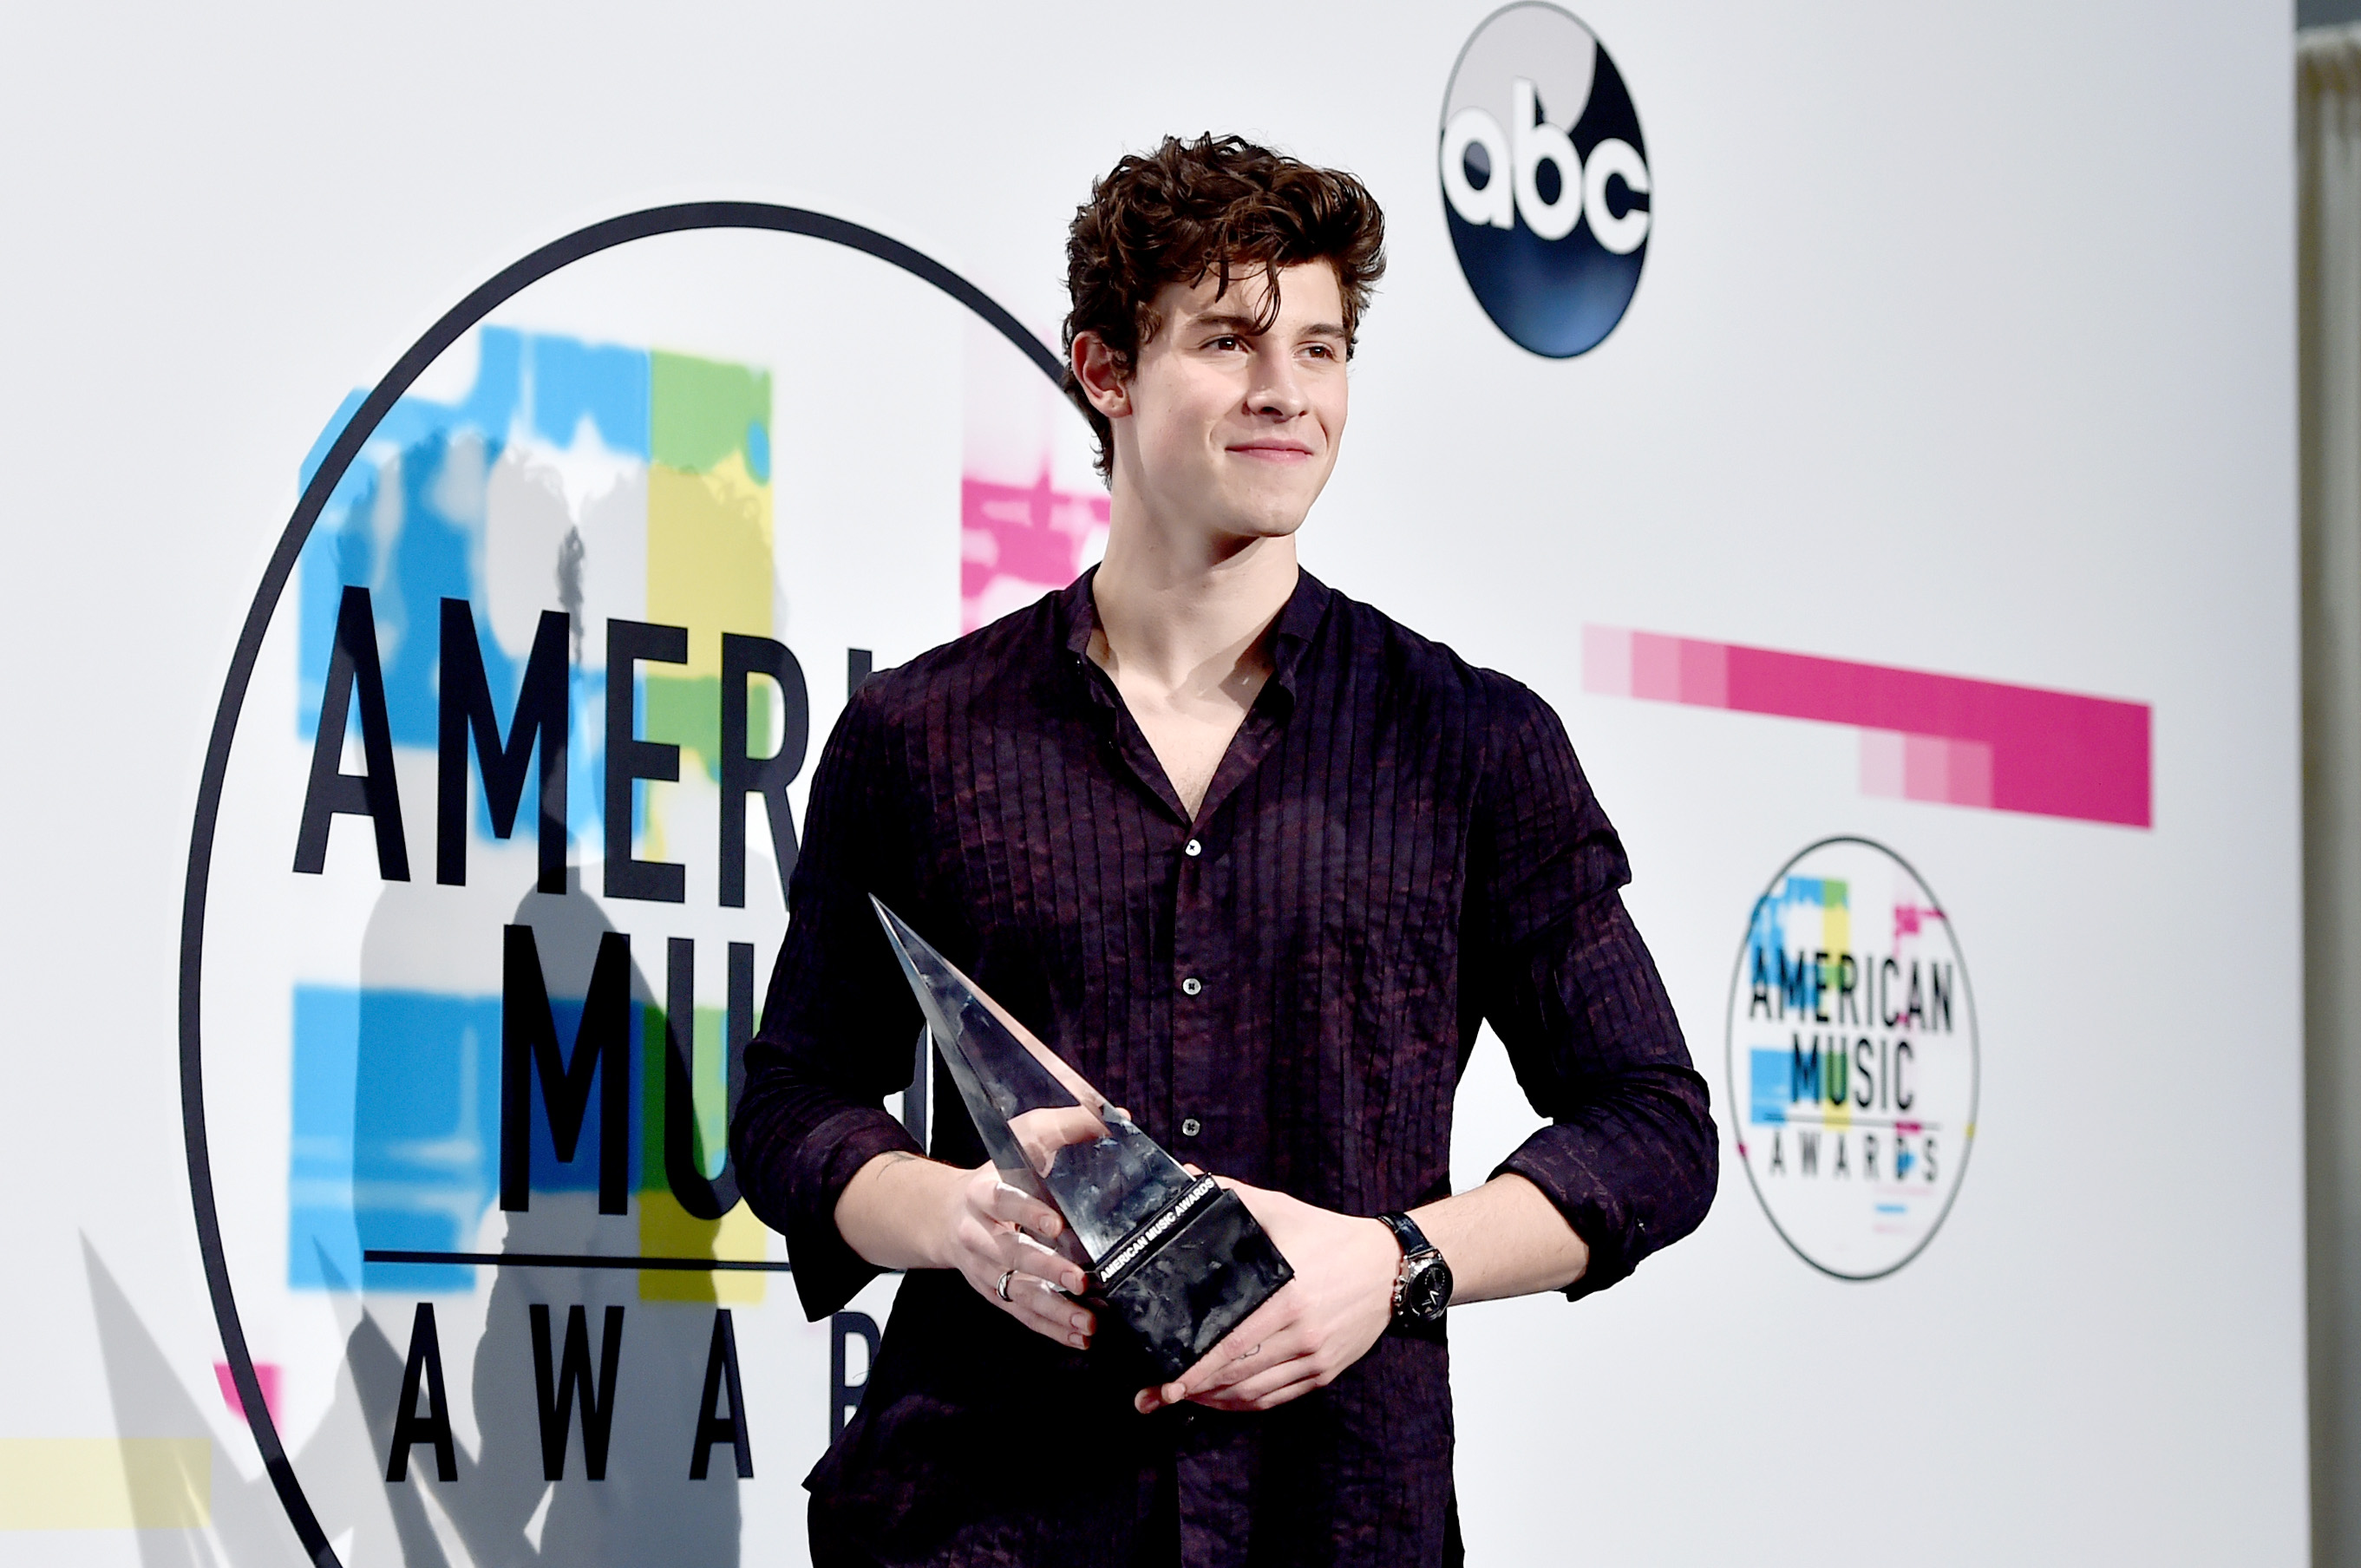 Shawn Mendes American Music Awards 2017